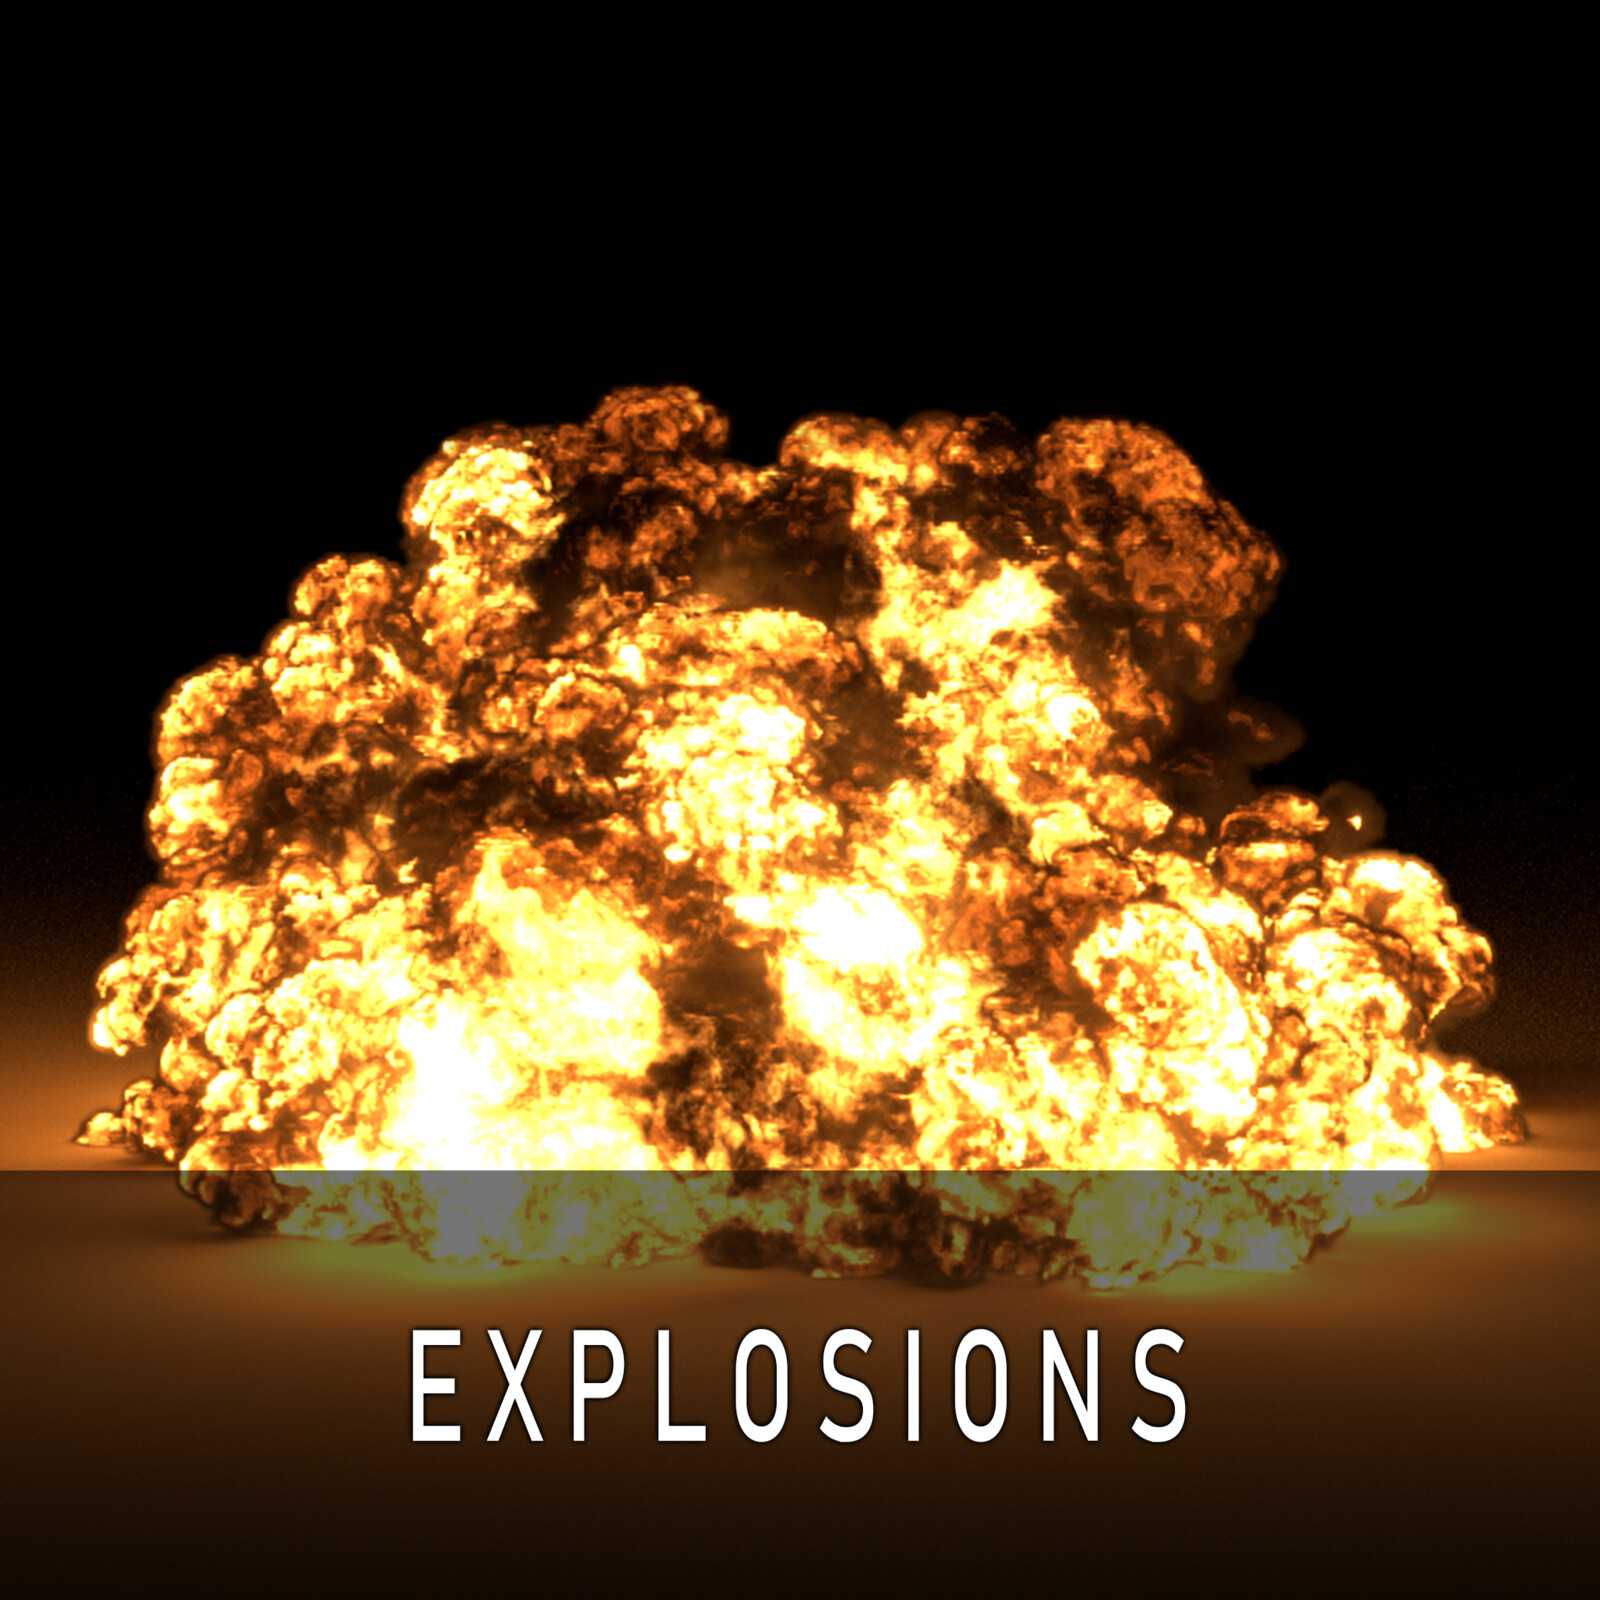 Explosions via PhoenixFD for Maya